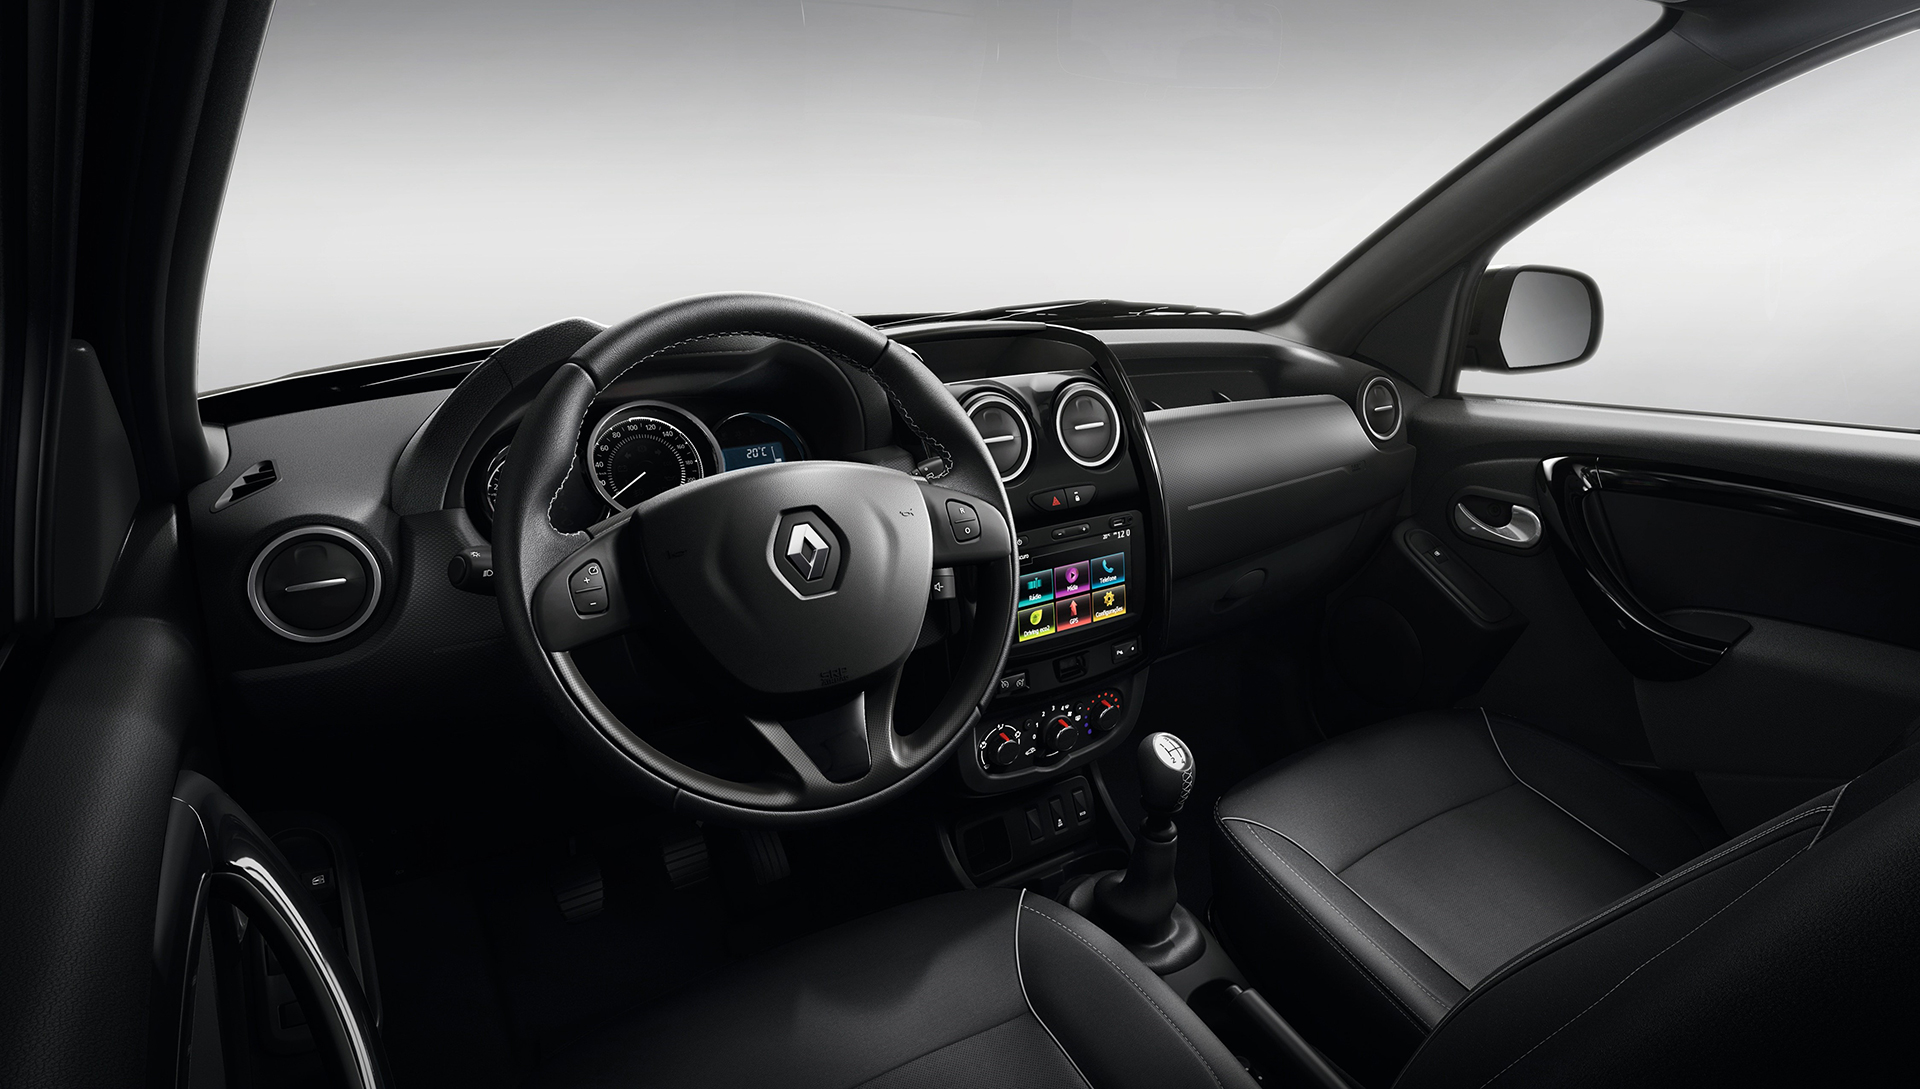 Renault Duster Oroch Pickup - front interior / intérieur avant